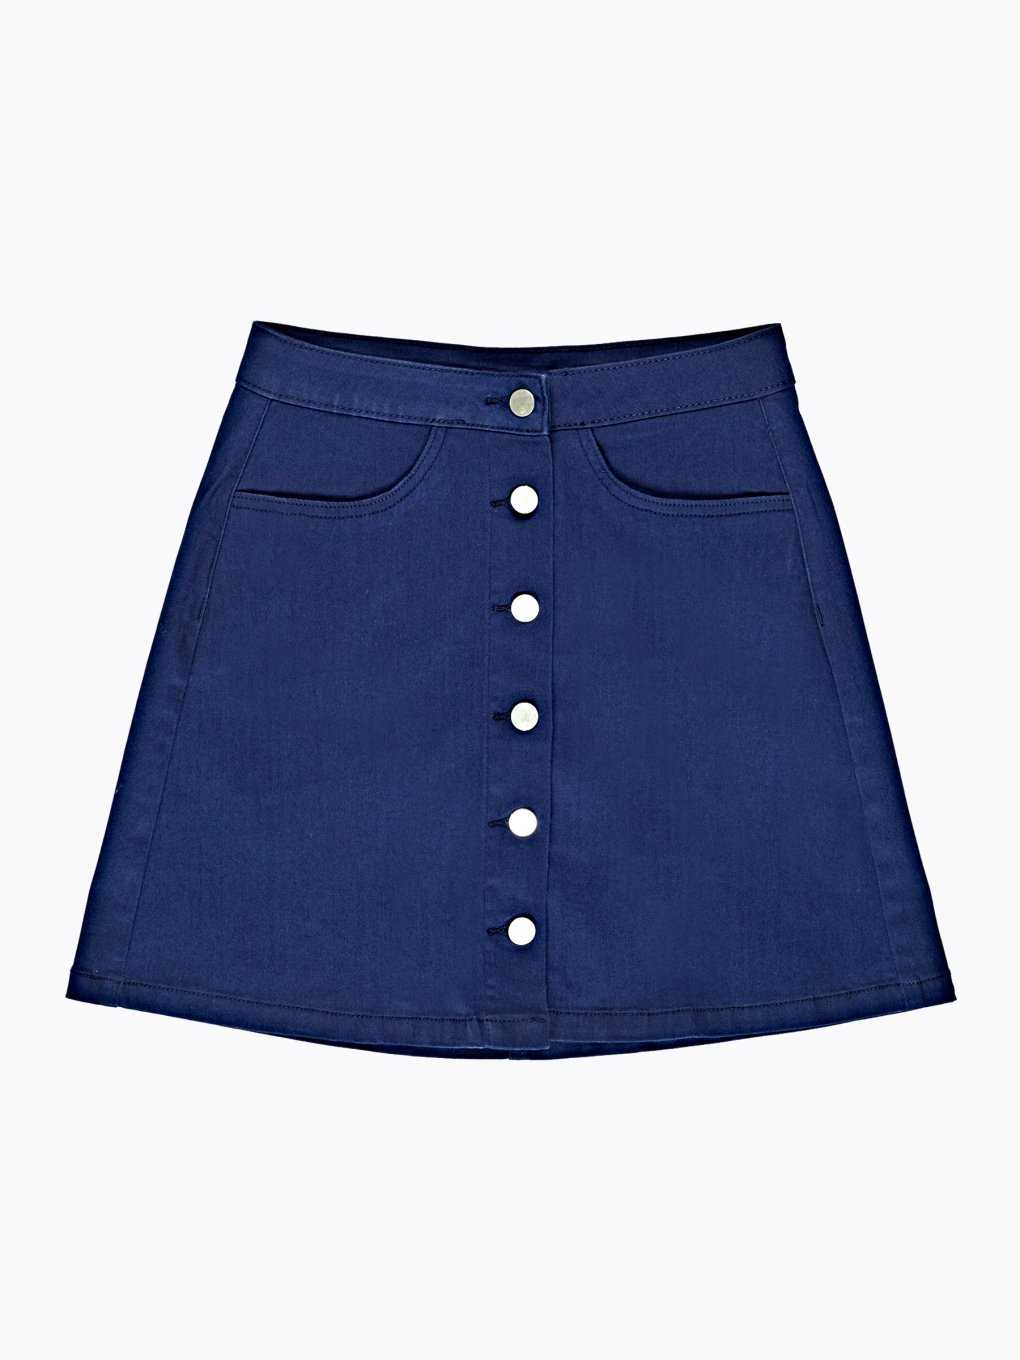 Button-up a-line skirt